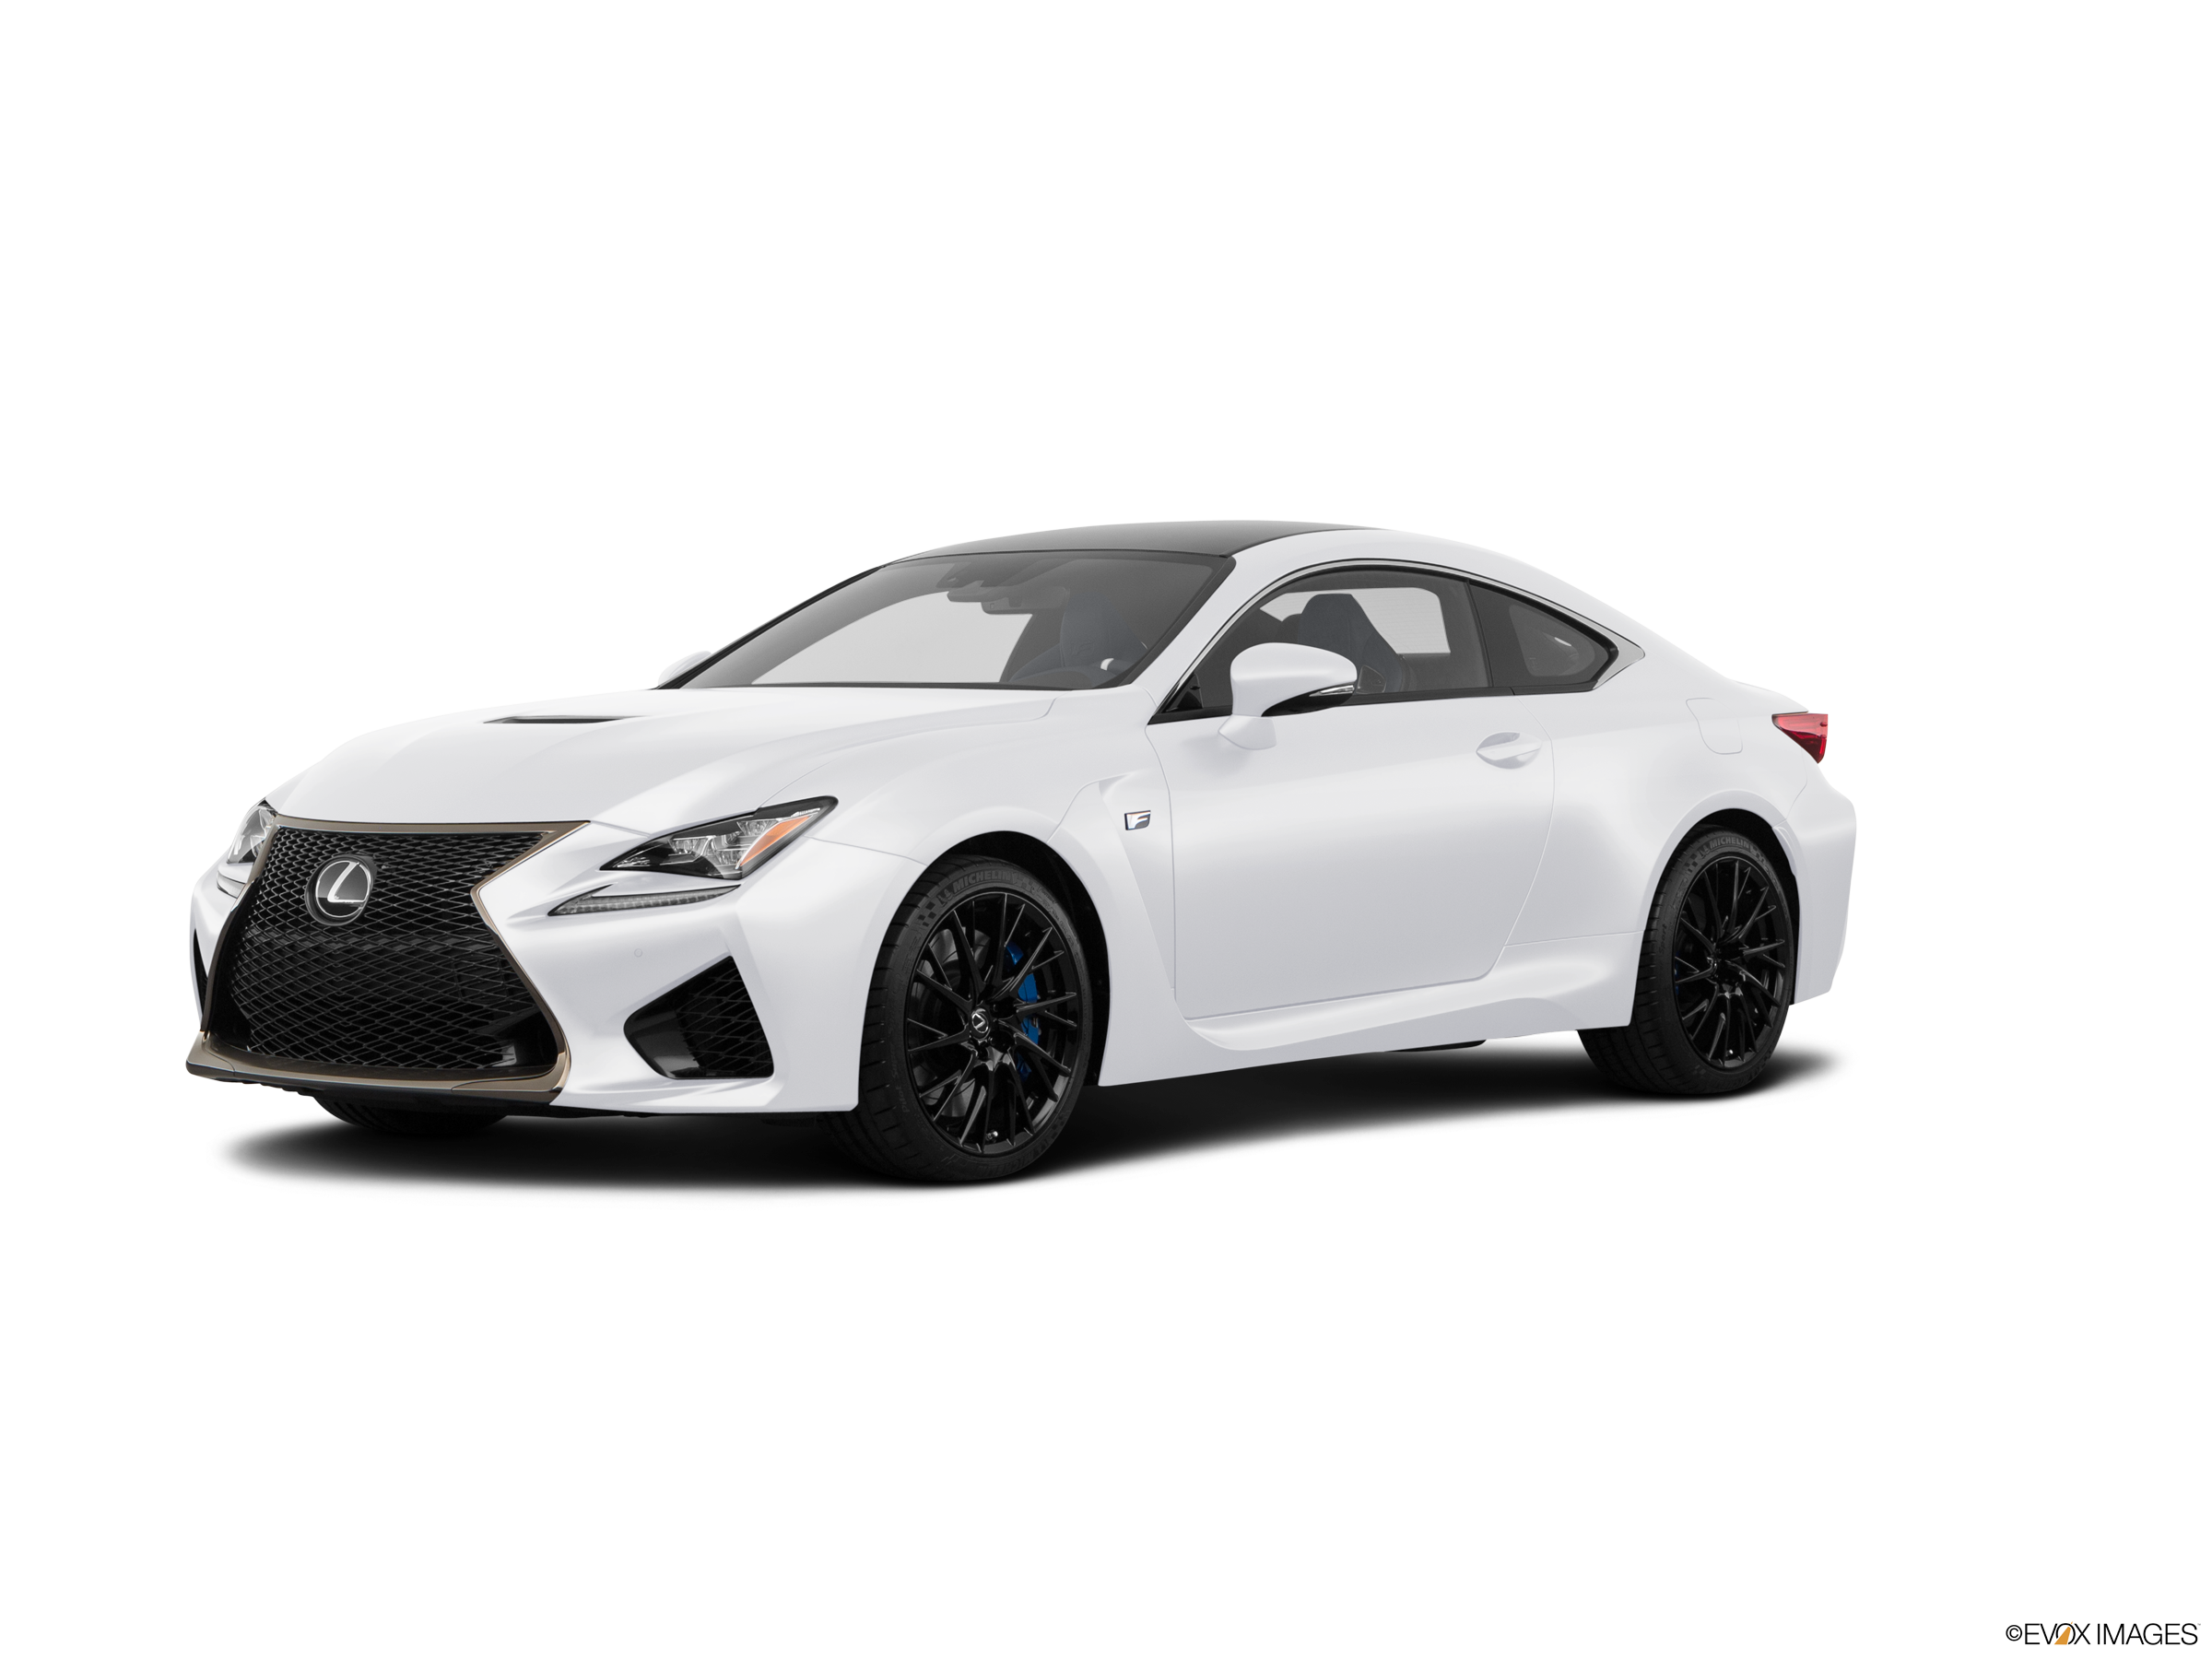 Highest Horsepower Luxury Vehicles of 2019 - 2019 Lexus RC